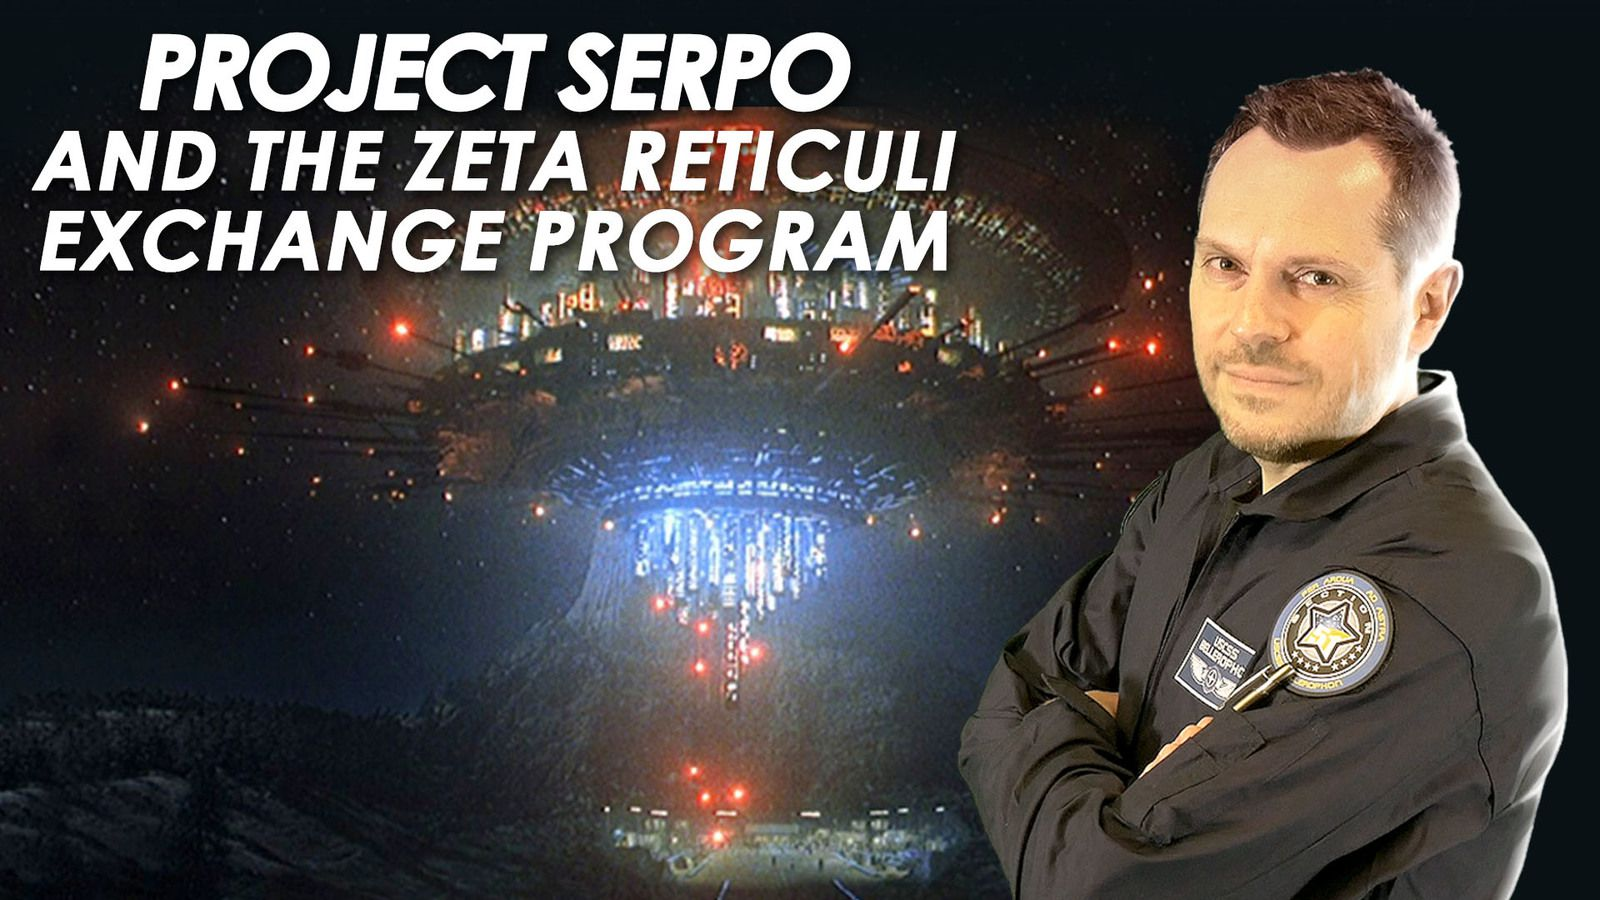 👽 Project SERPO and The Zeta Reticuli Exchange Program